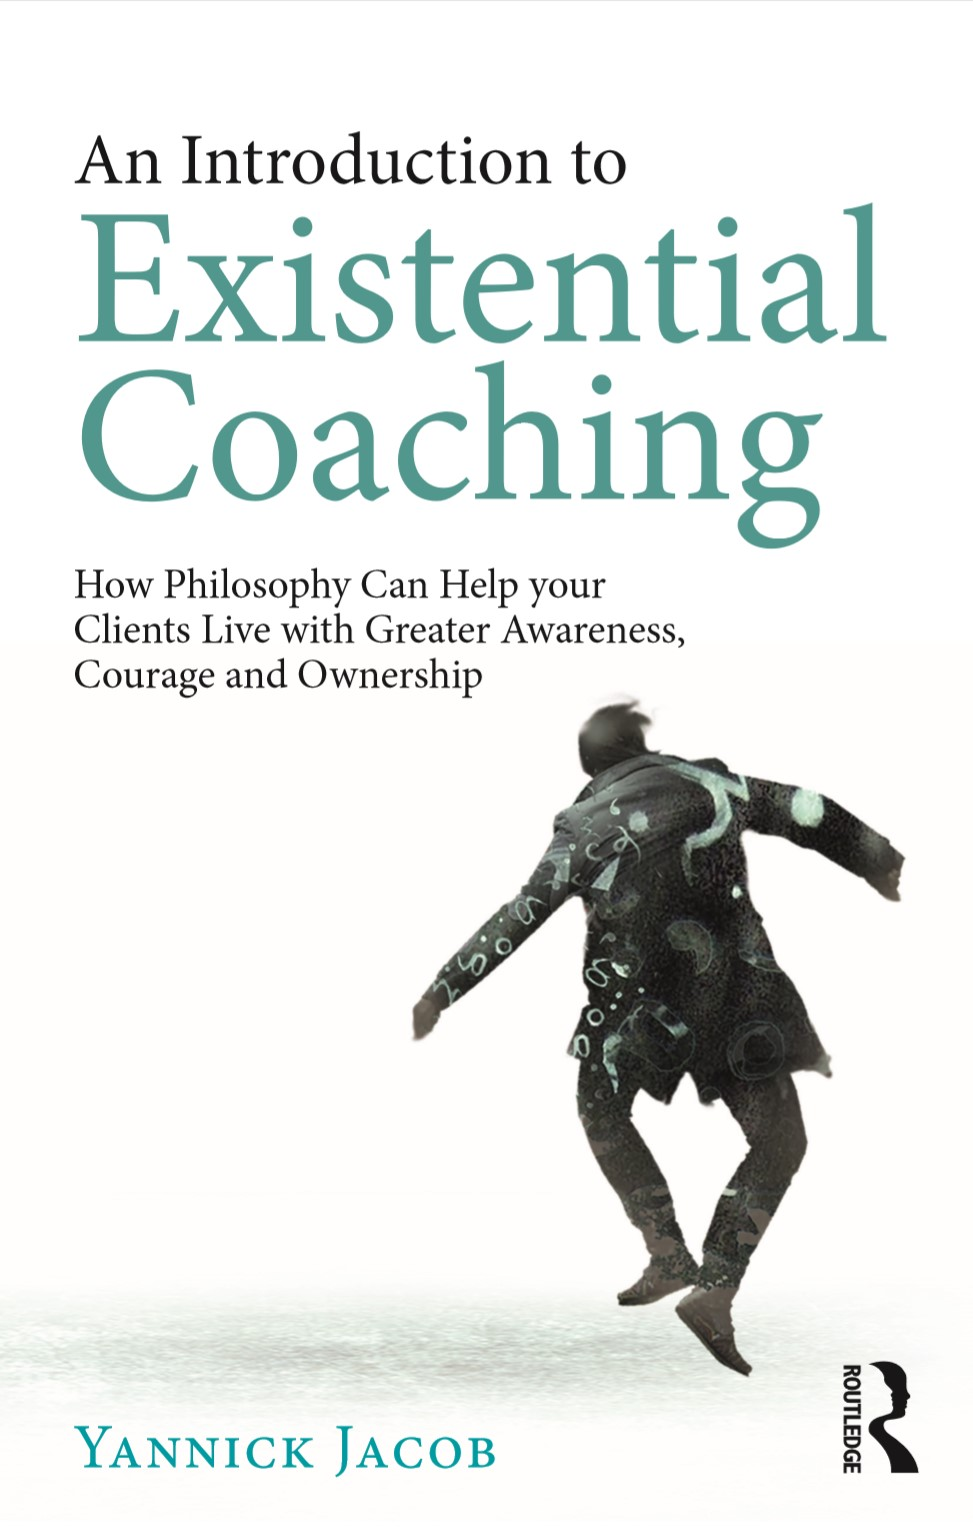 Introduction to Existential Coaching